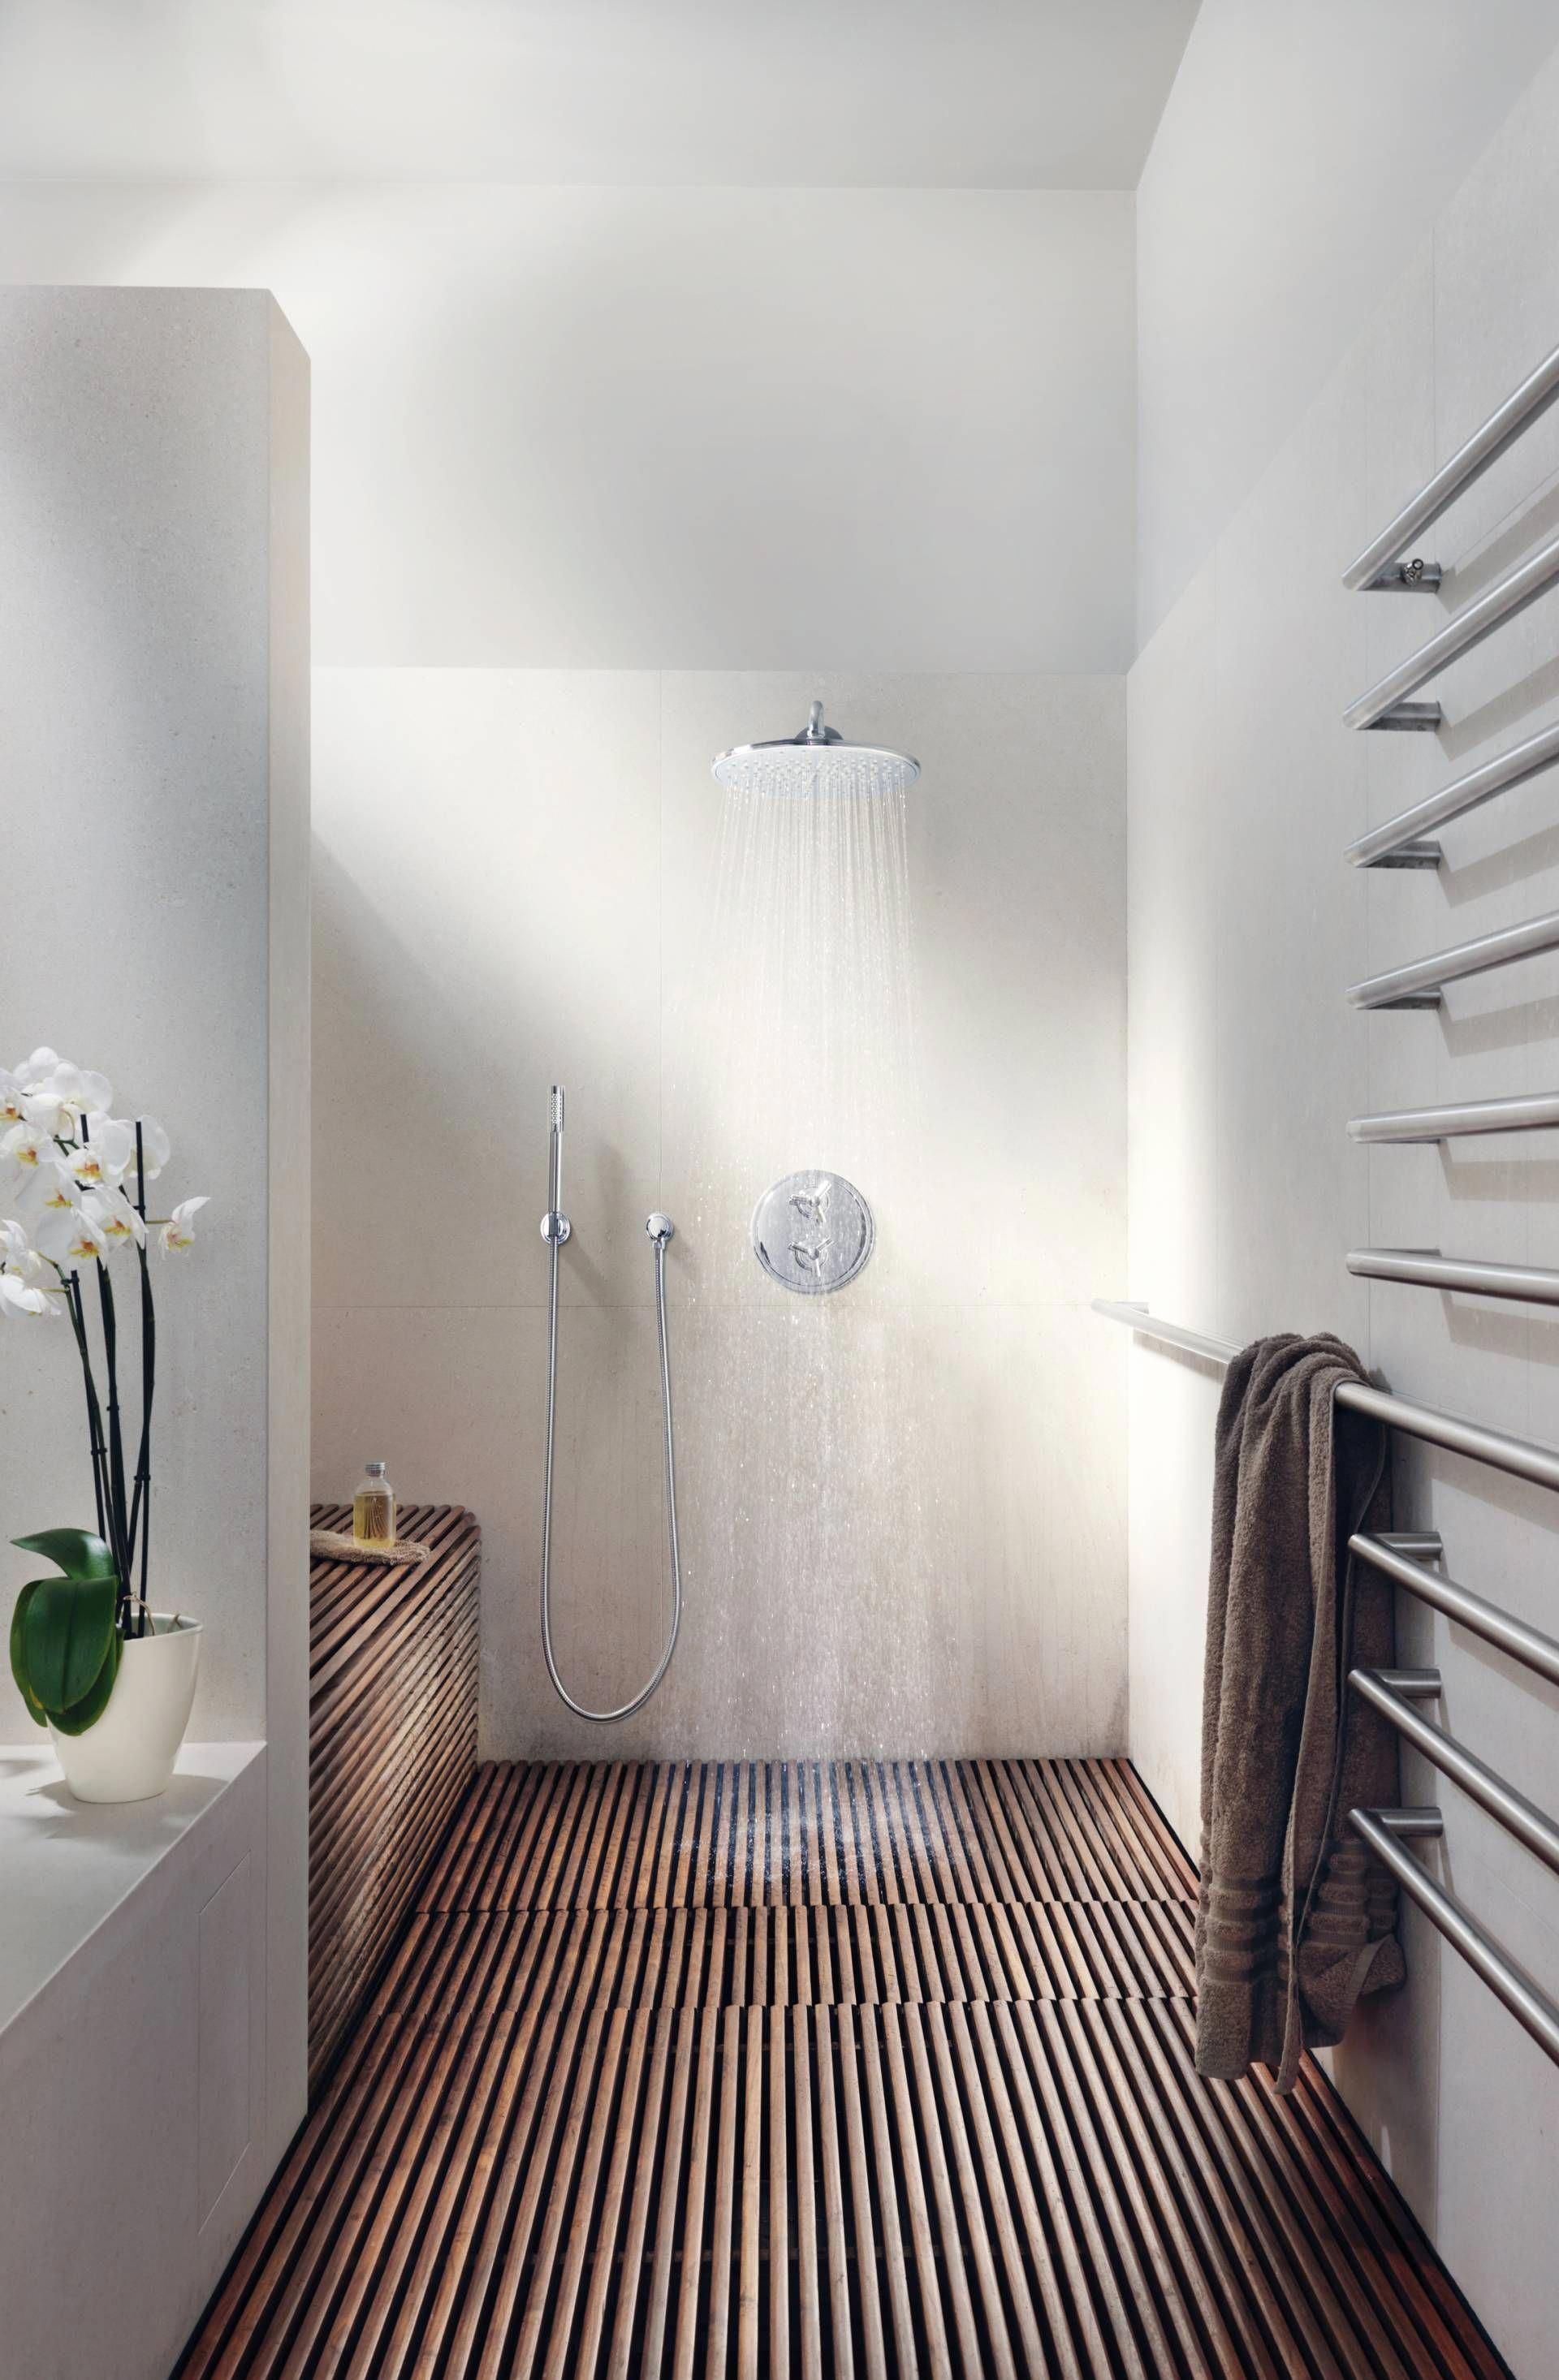 Wood Slat Shower Floors Are Heavily Inspired By Scandinavian Or Japanese Bathrooms Add Wa Minimalism Interior Bathroom Interior Design Minimal Interior Design